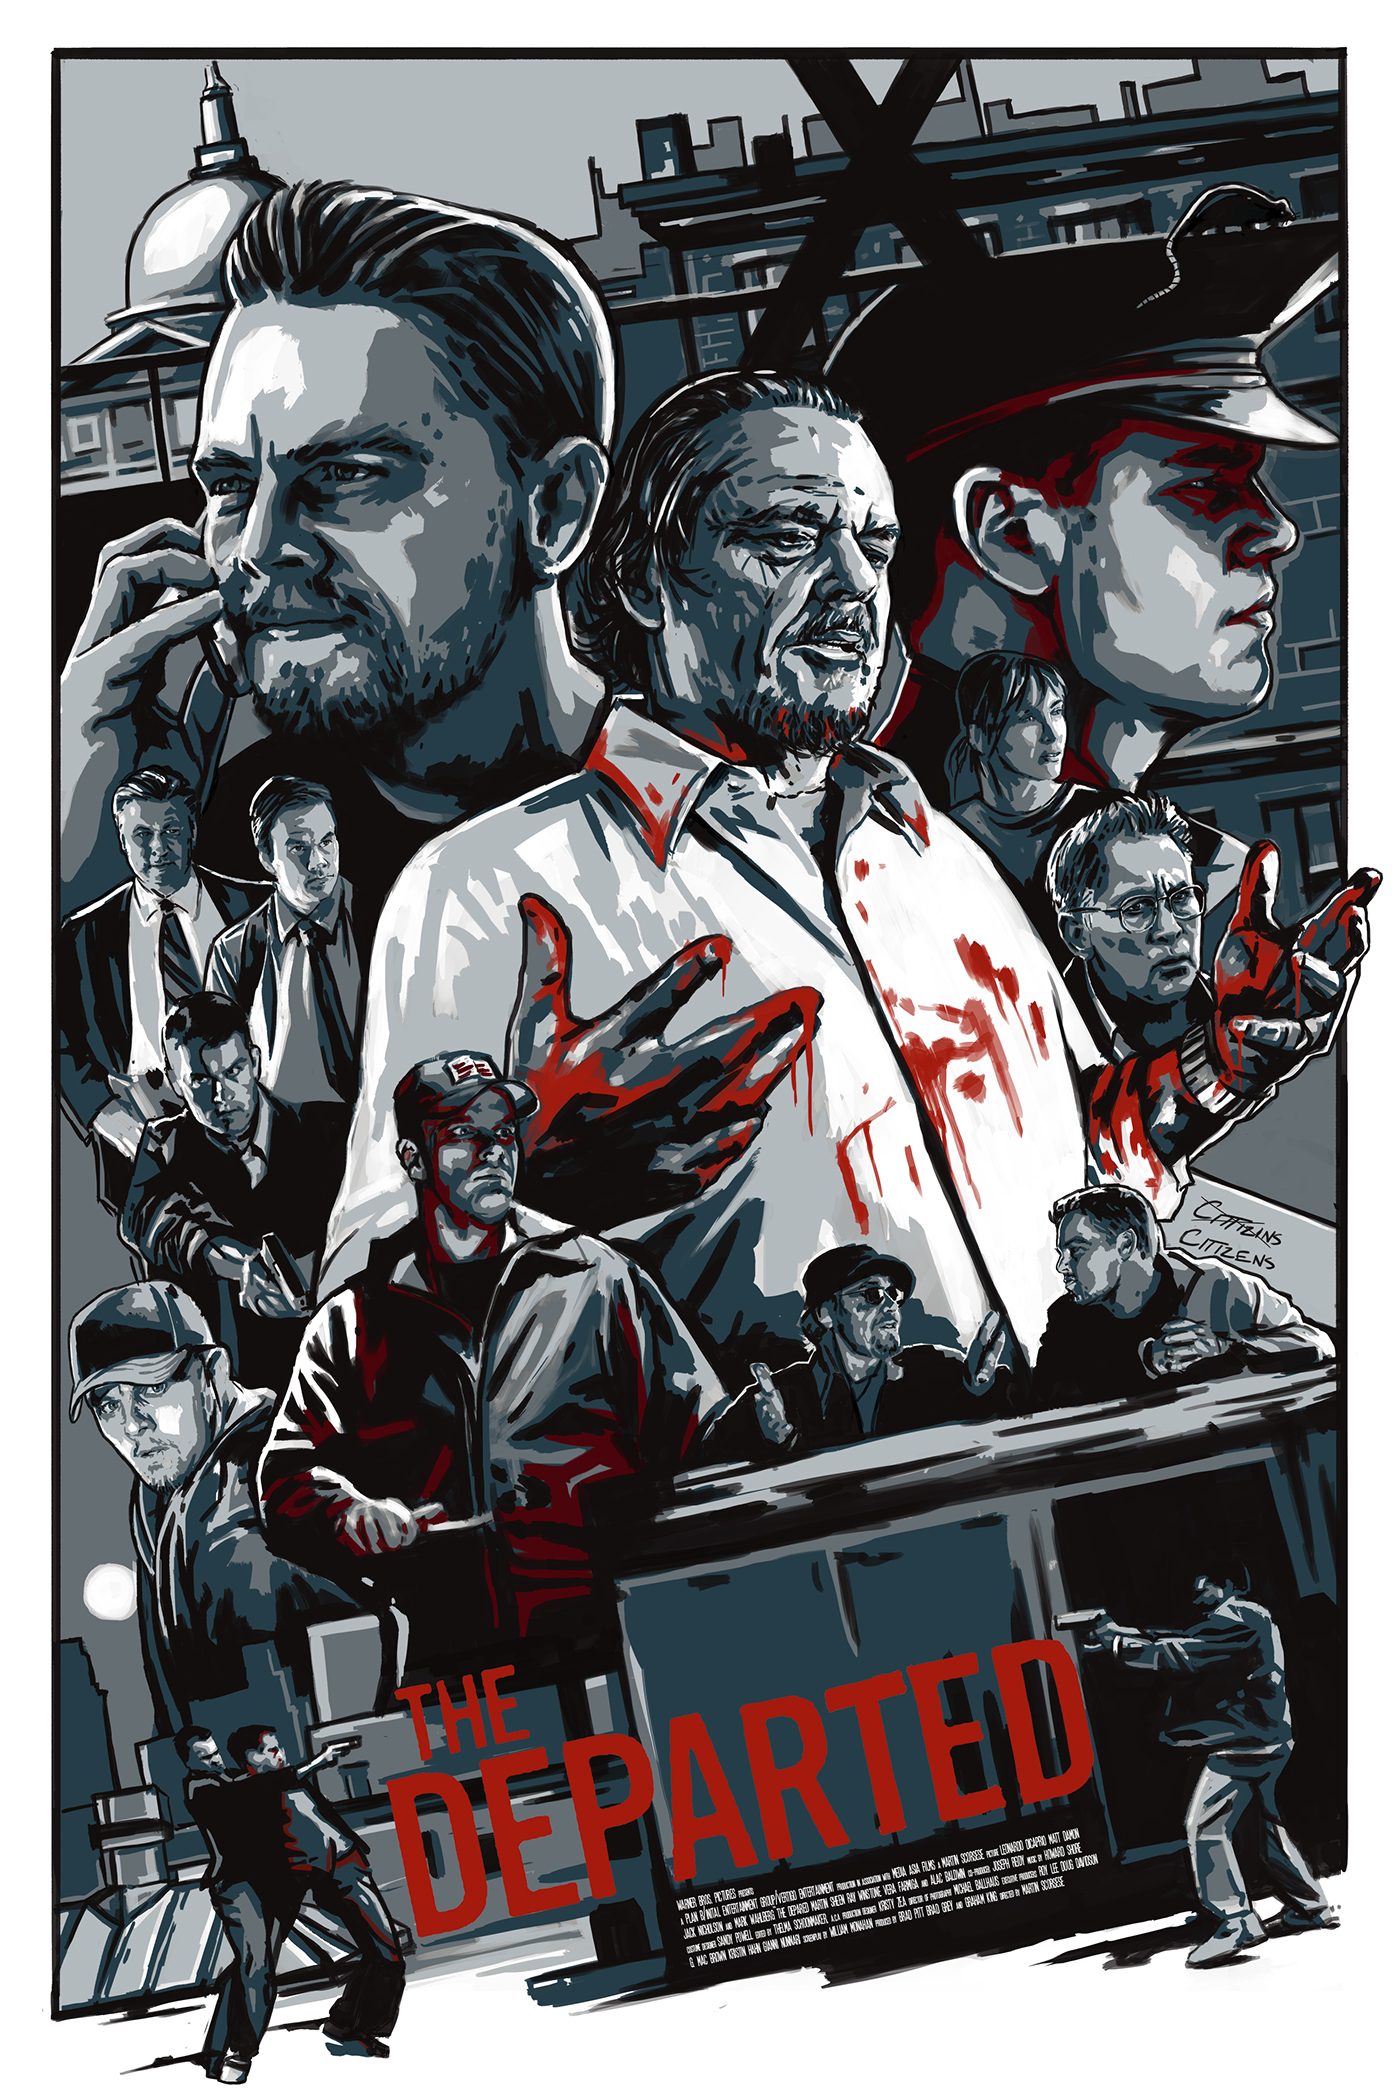 The Departed: Silkscreened Film Poster on Behance